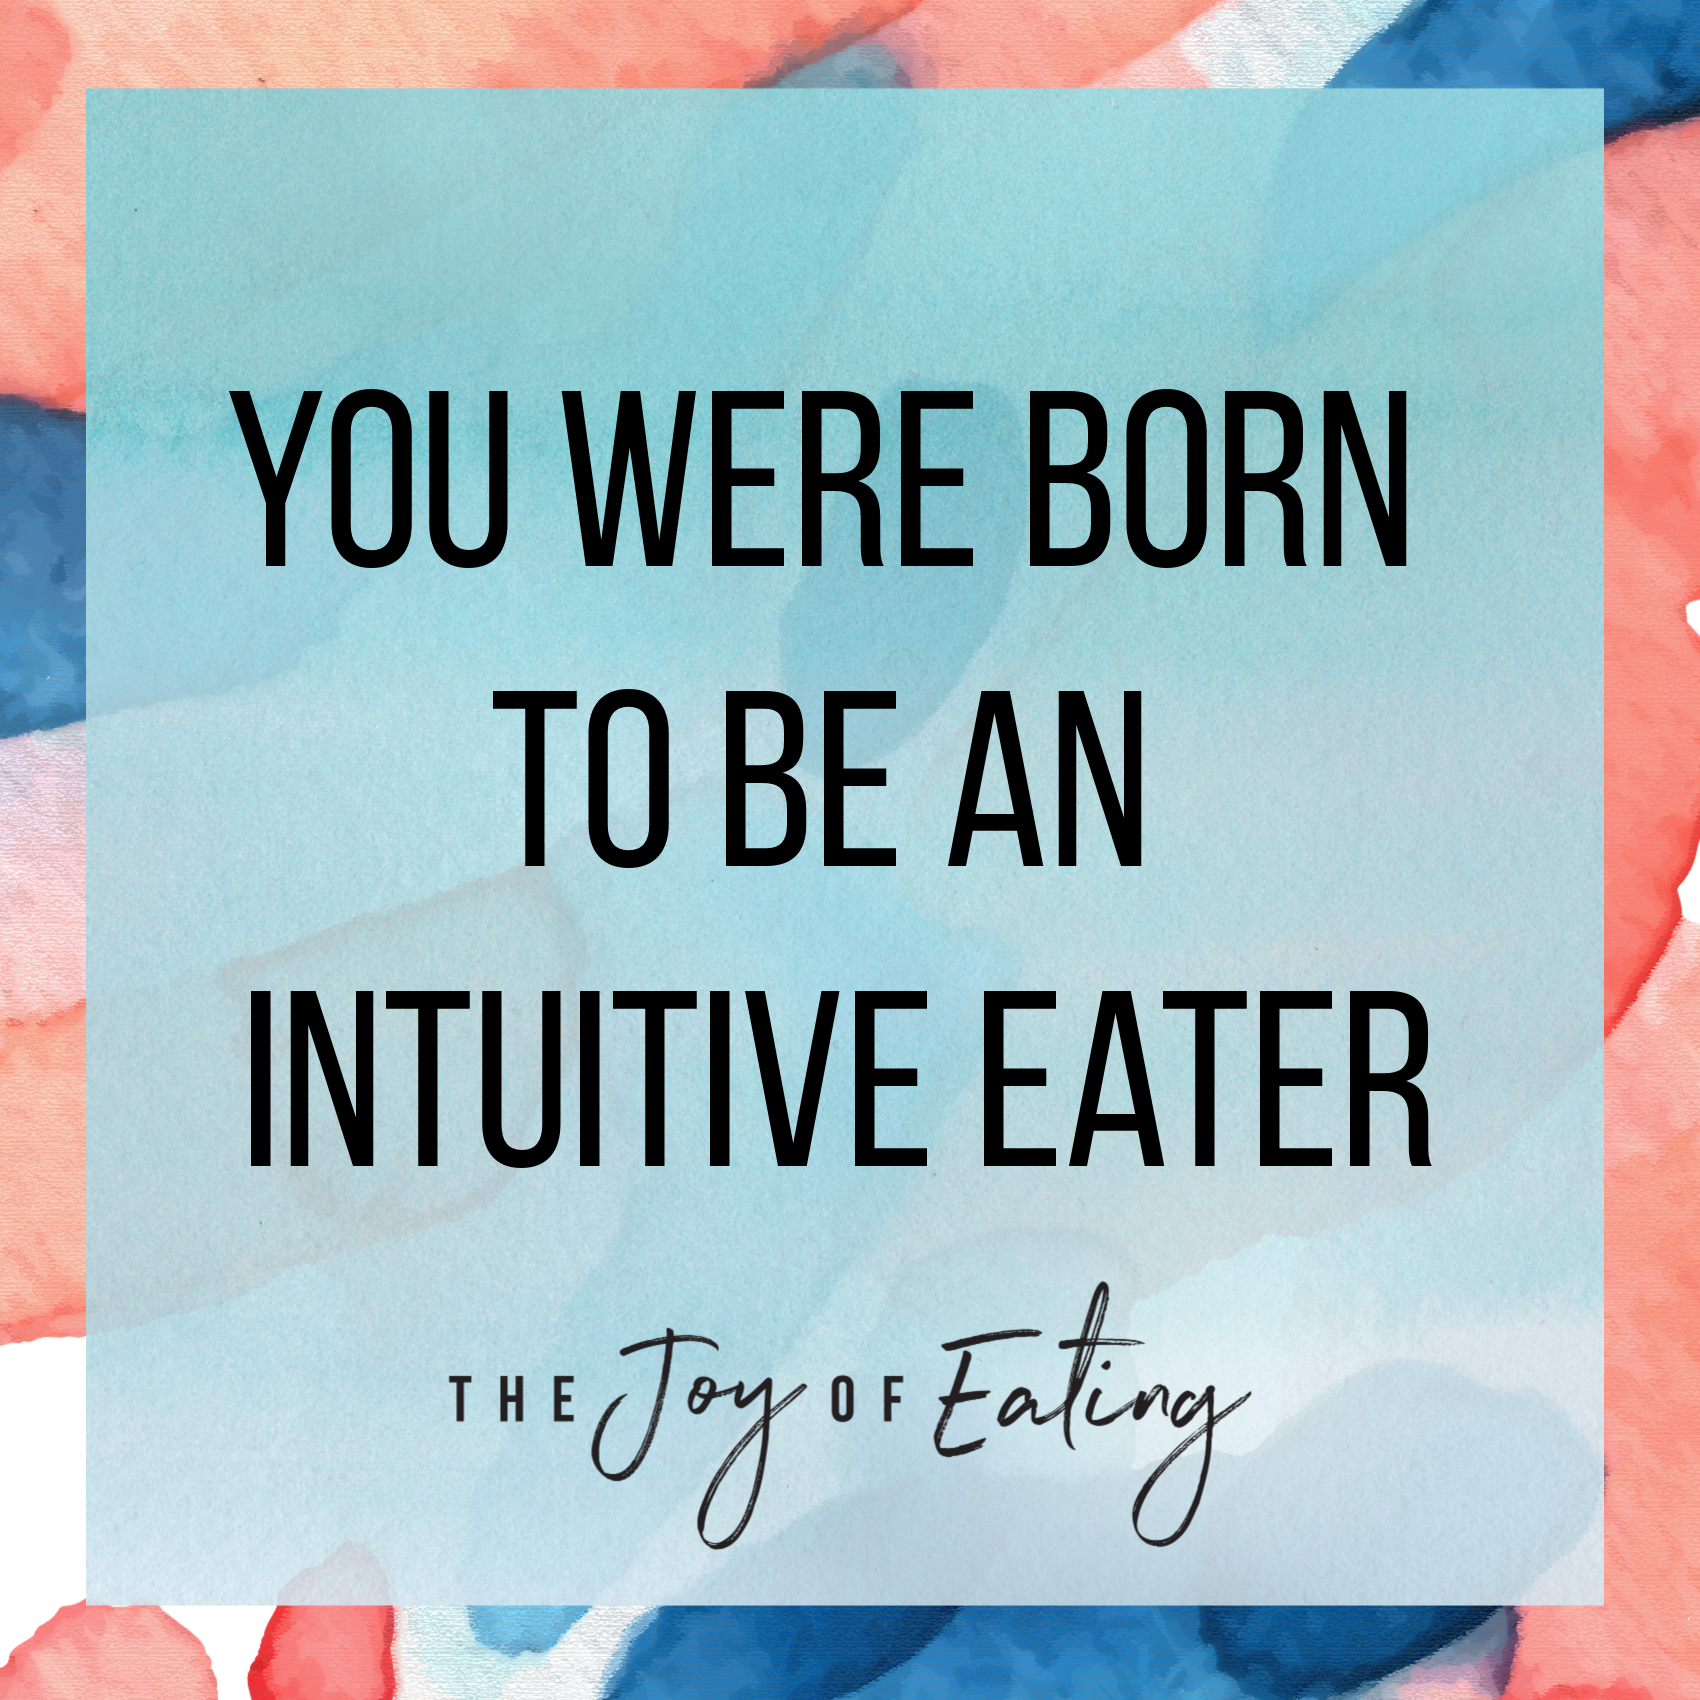 We were all born to be intuitive eaters